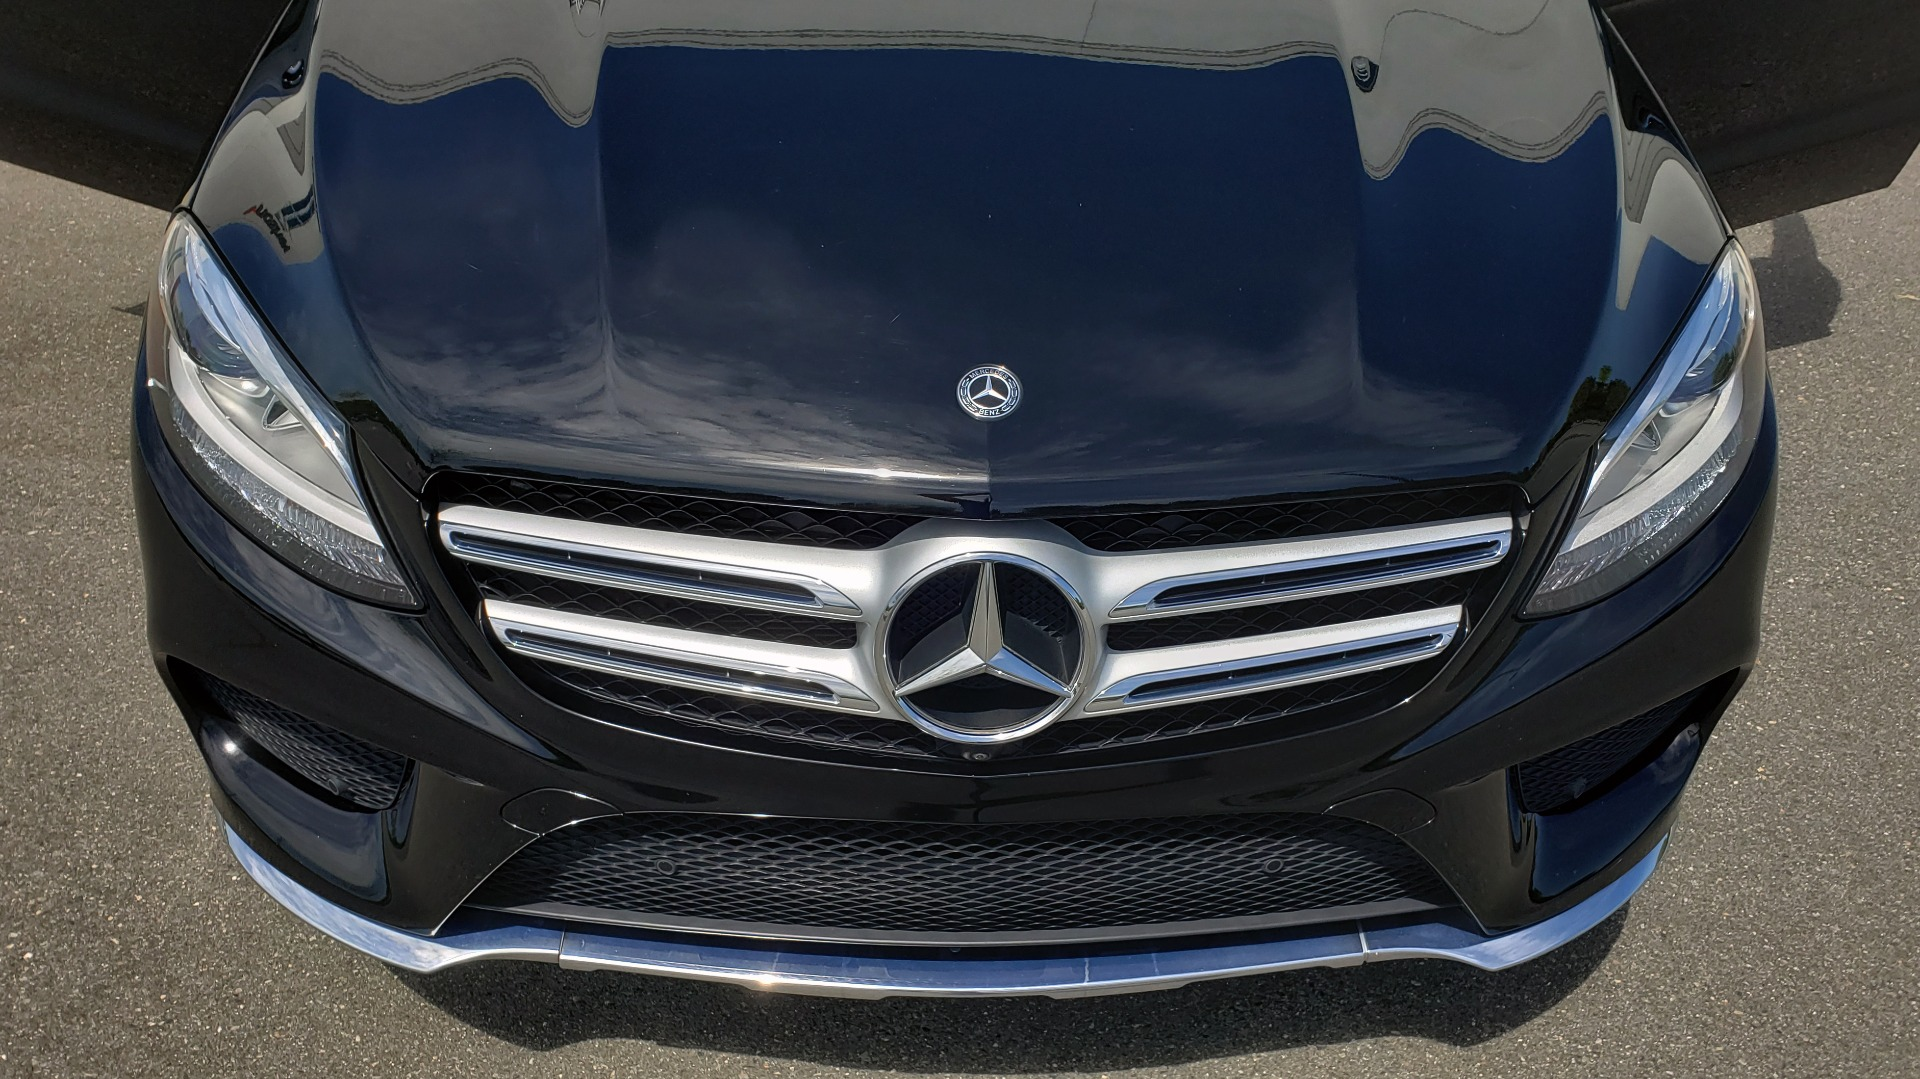 Used 2018 Mercedes-Benz GLE 350 PREMIUM / NAV / H/K SOUND / SUNROOF / REARVIEW for sale Sold at Formula Imports in Charlotte NC 28227 29